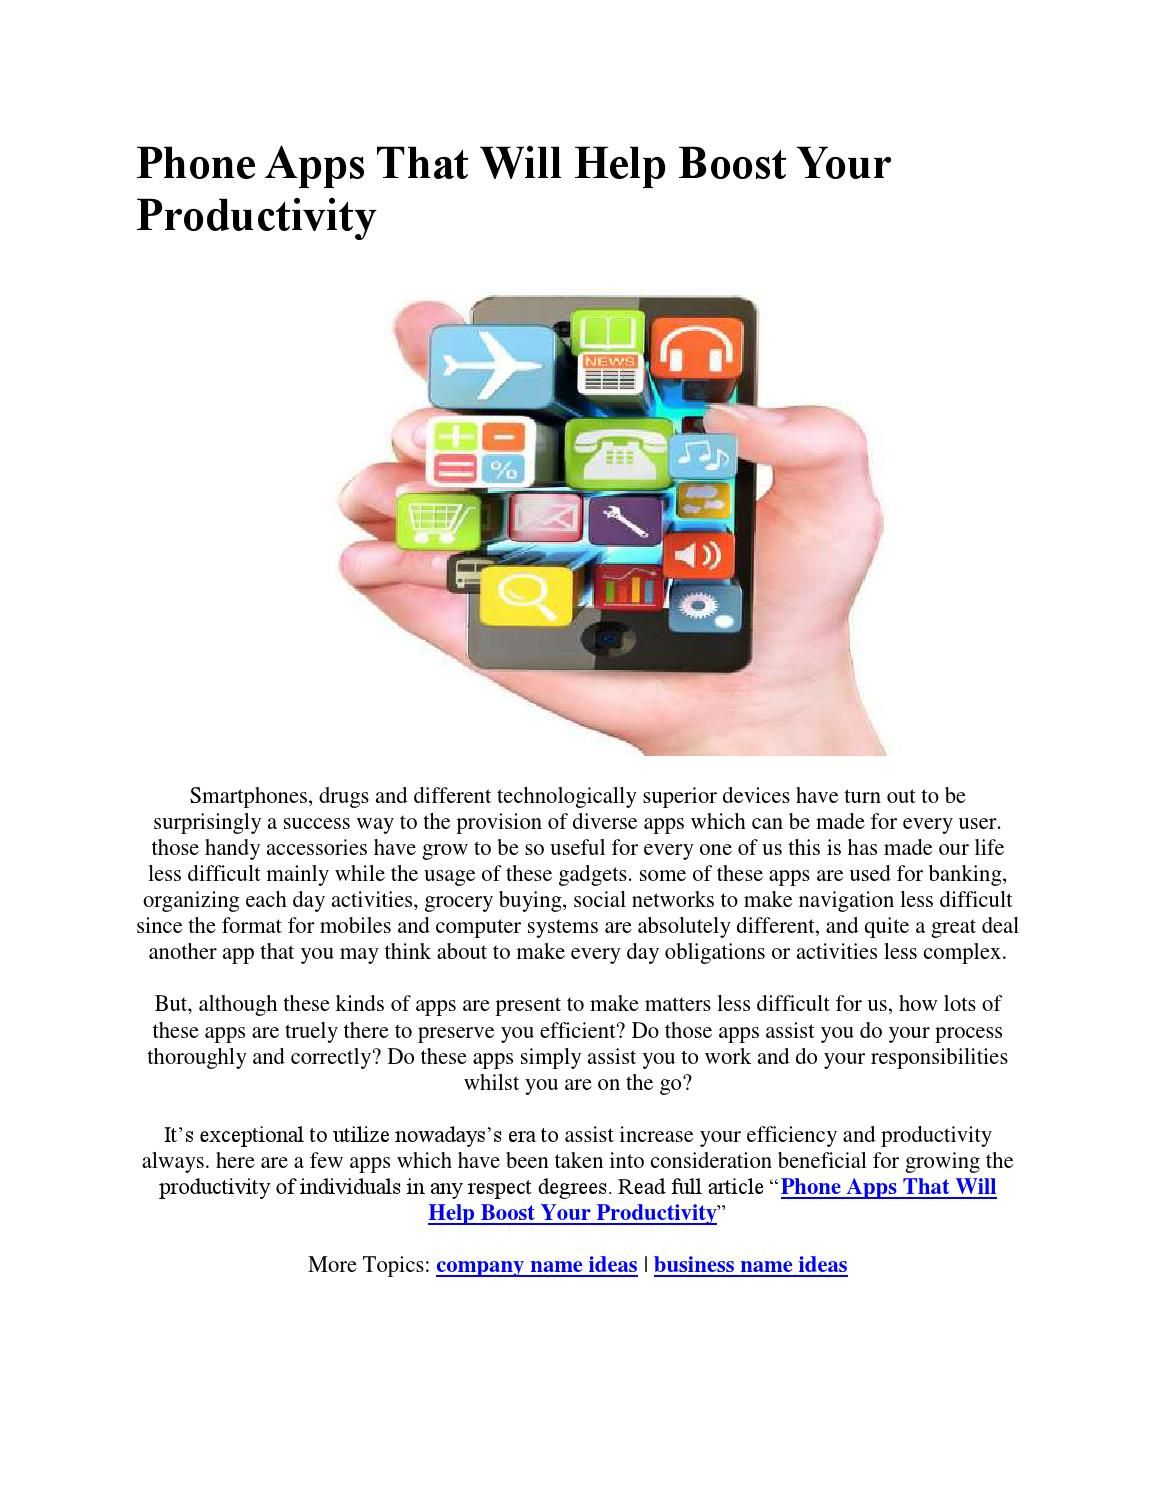 Phone apps that will help boost your productivity